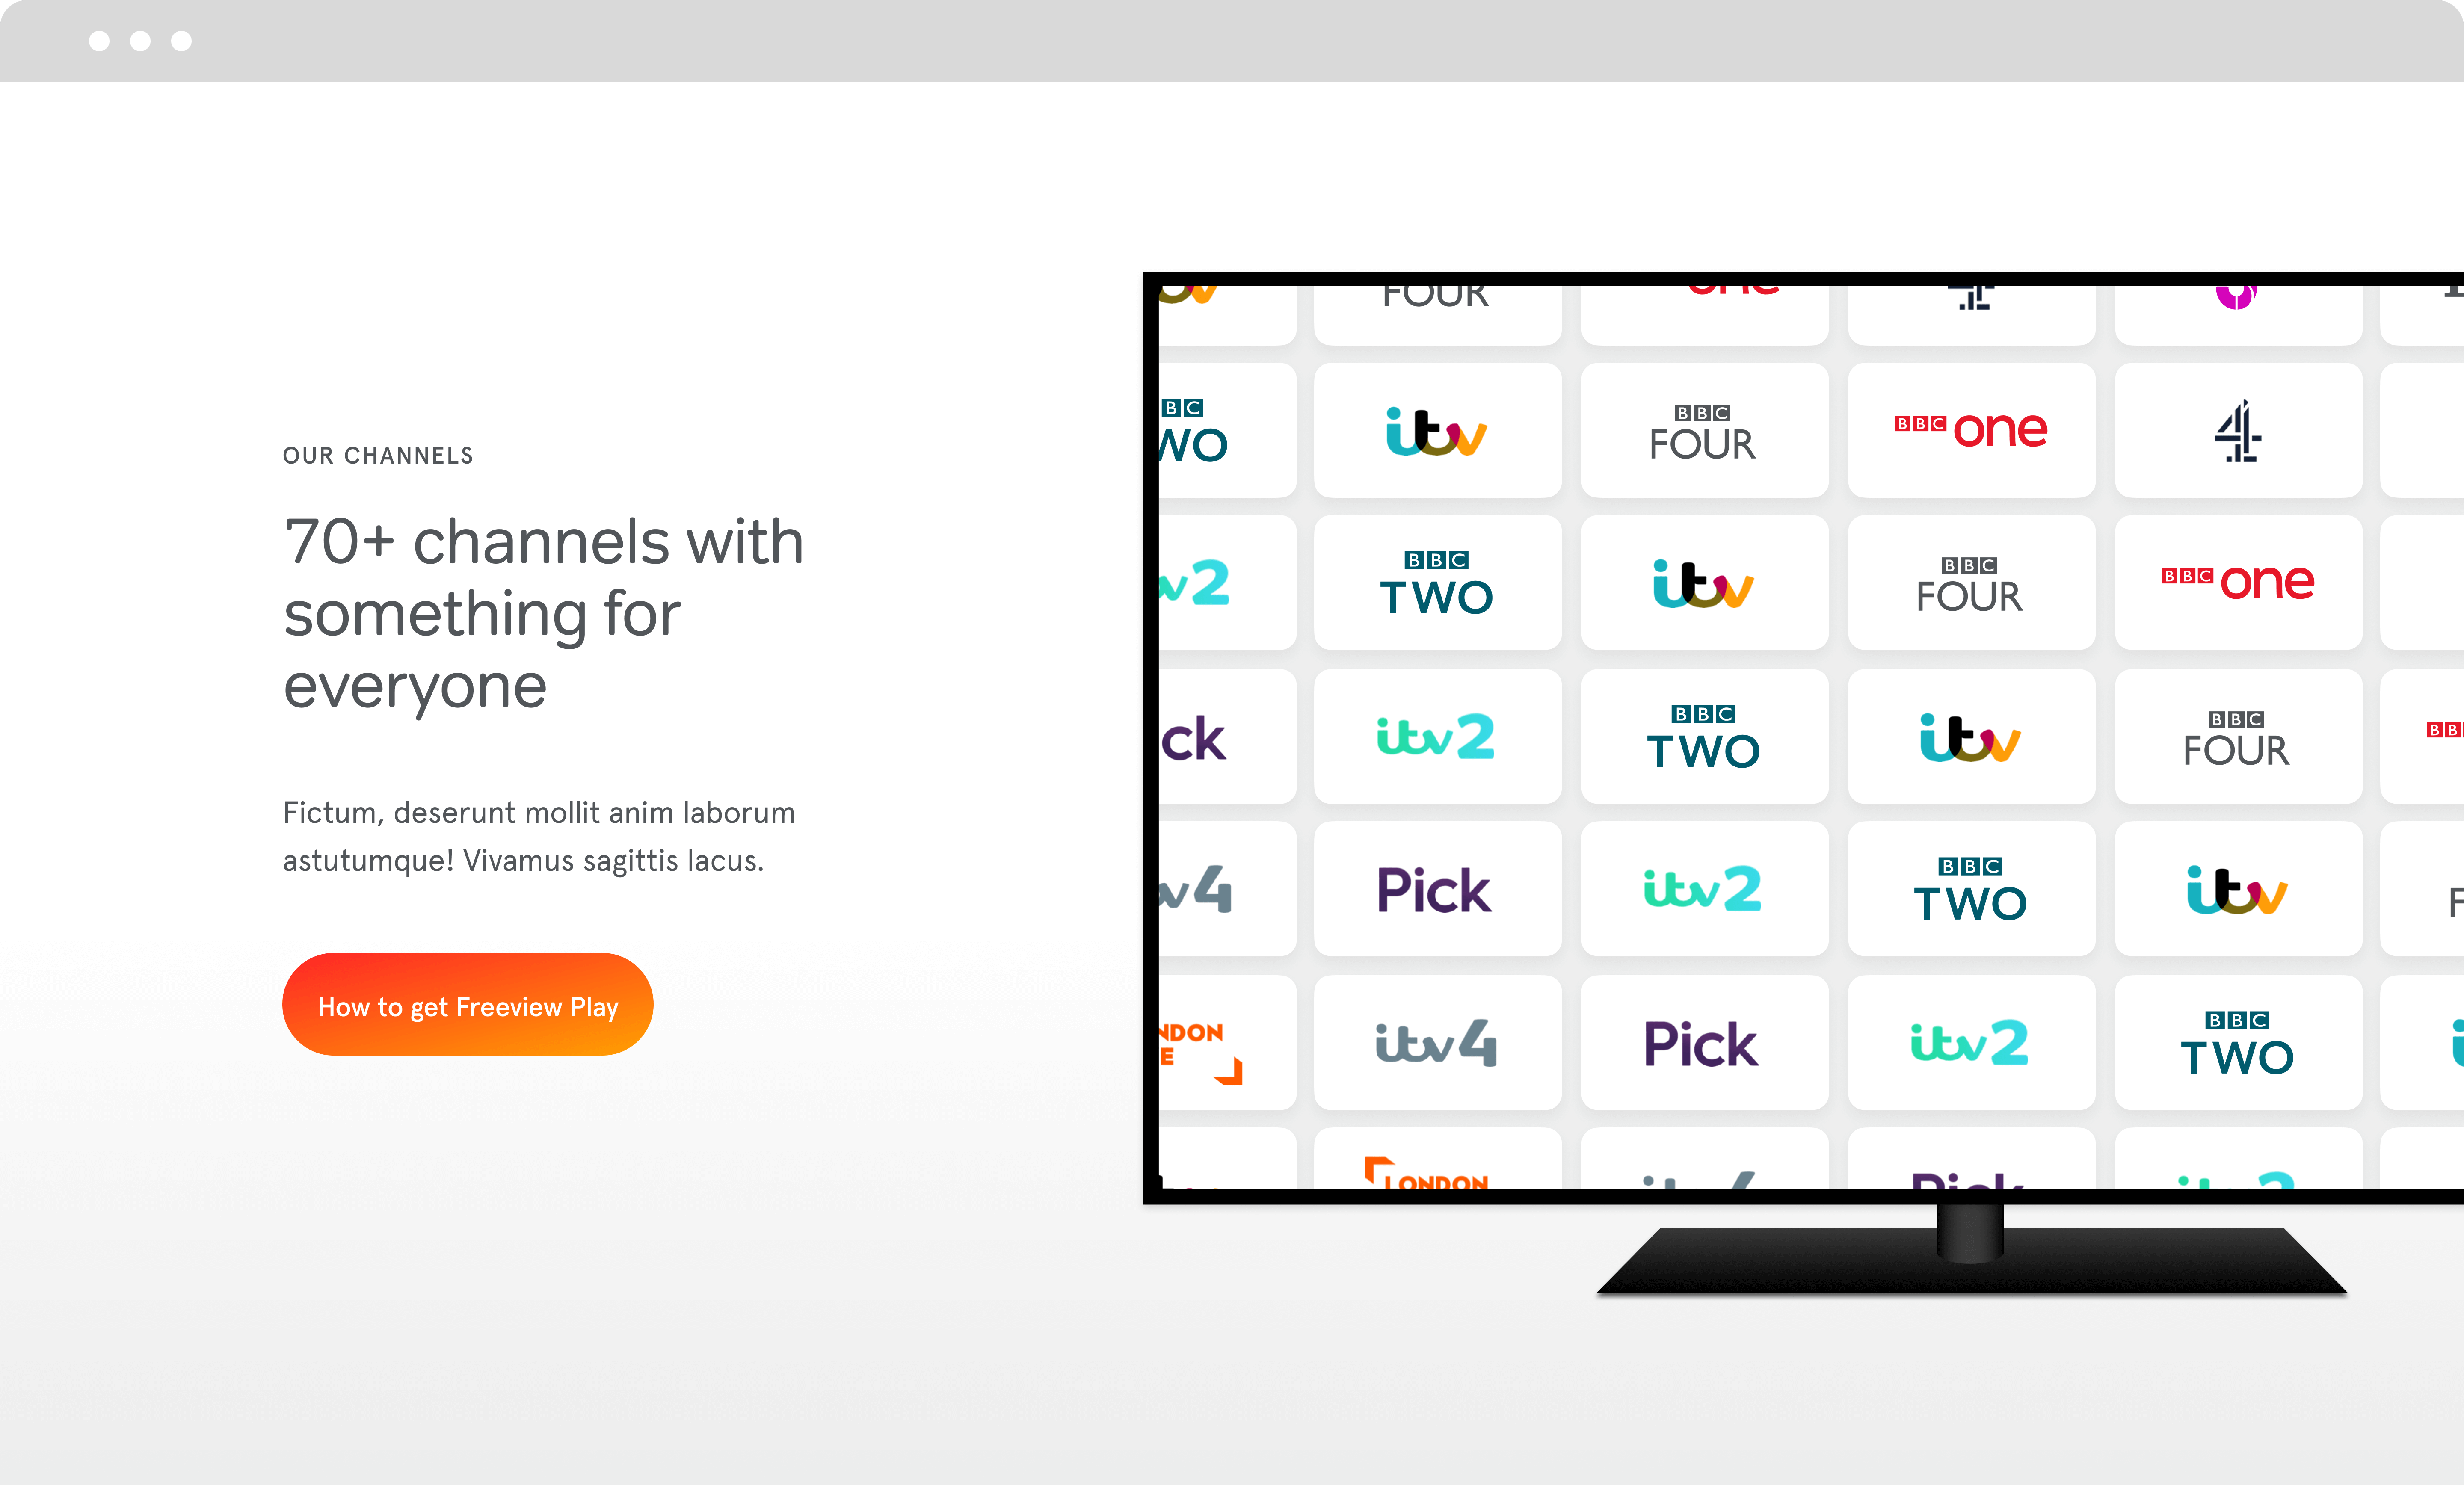 freeview-mockup-get-freeview-2